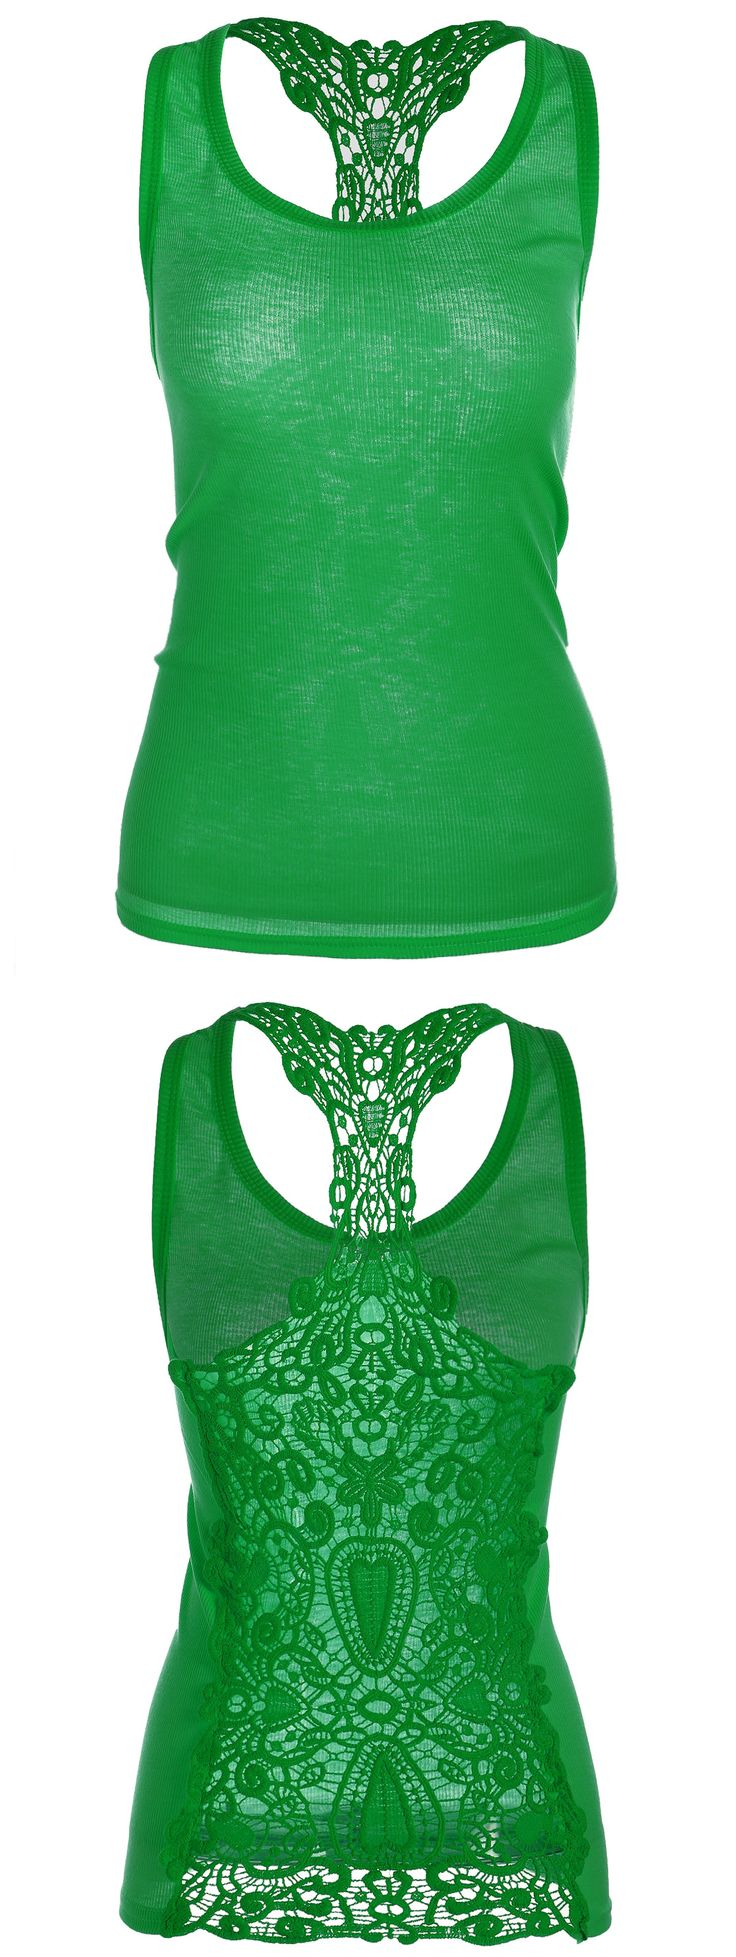 $7.88 Lace Panel Racerback Tank Top - Green